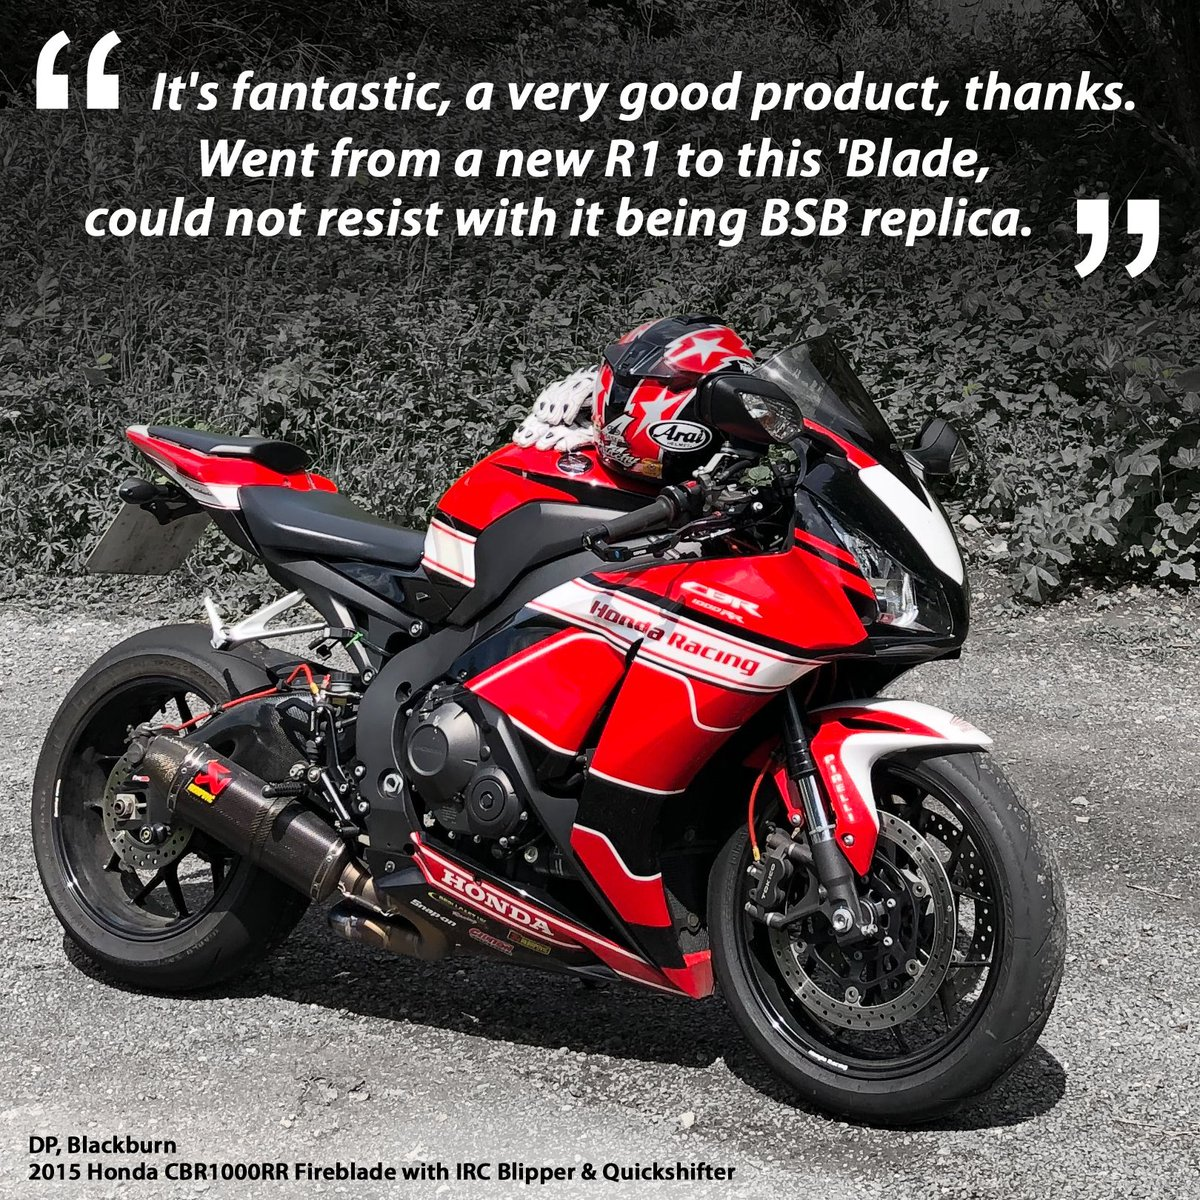 Gain super-quick, fully-automated, blipped and entirely clutchless downshifting on your #Fireblade by simply pressing your gear lever, as normal.  http://www. bikehps.com/acatalog/Mecha nical-Downshift-Blipper.html  …   #CBR1000RR #CBR1000RRFireblade #FirebladeCBR1000RR #HondaFireblade #HondaCBR1000RR #HondaCBR1000RRFireblade<br>http://pic.twitter.com/qWkheHLyEF